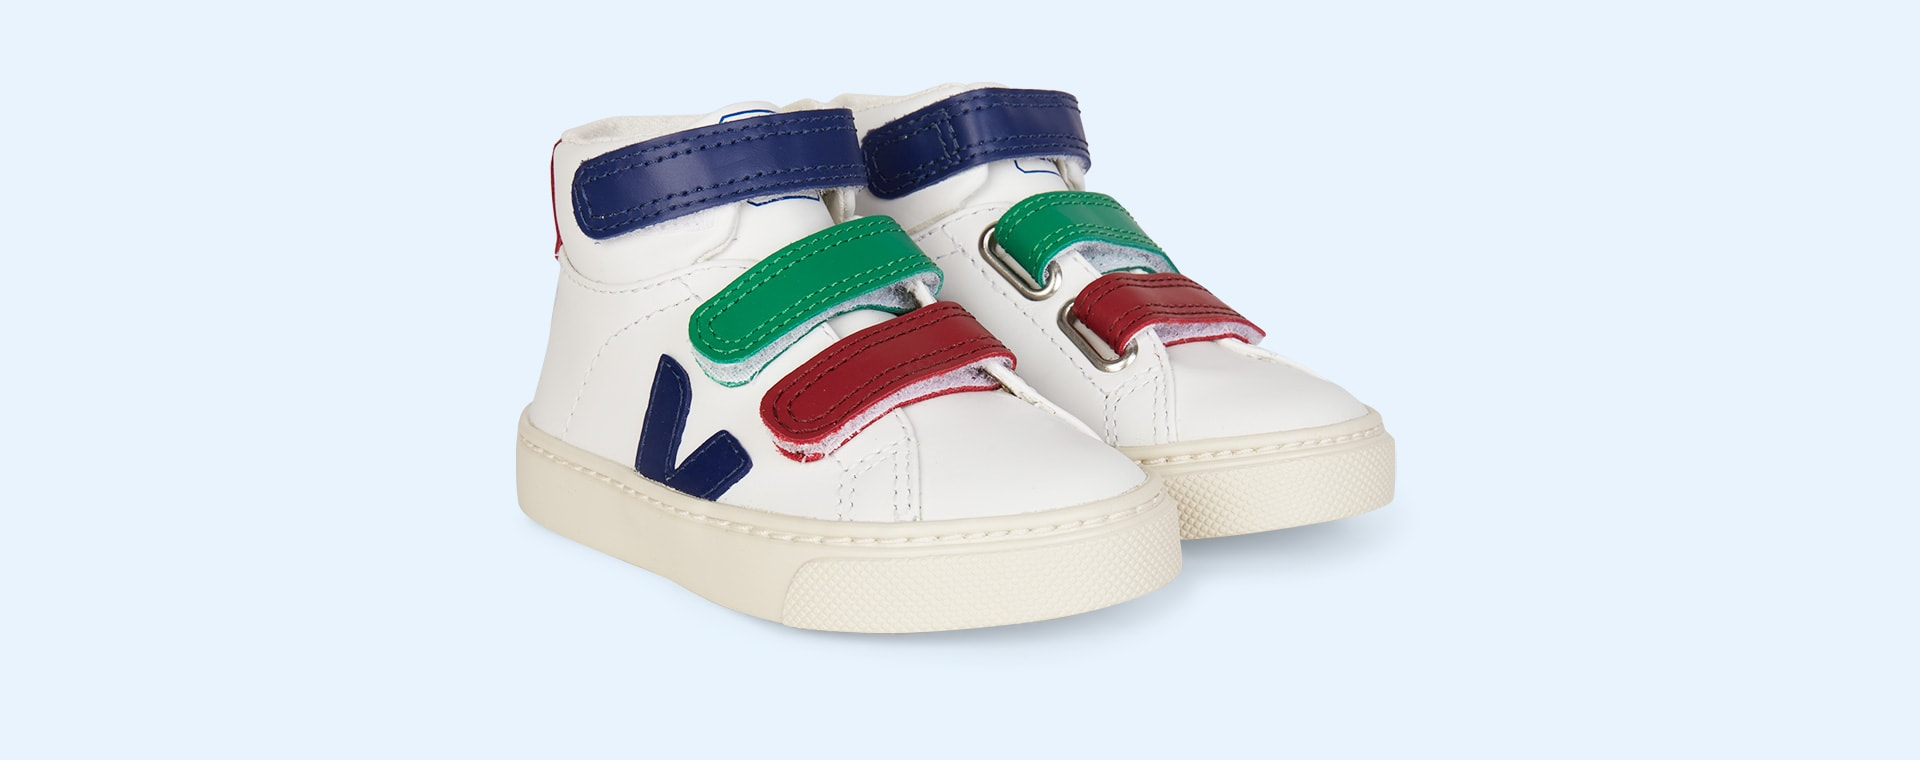 White Blue Veja Esplar Mid Small Velcro Trainer